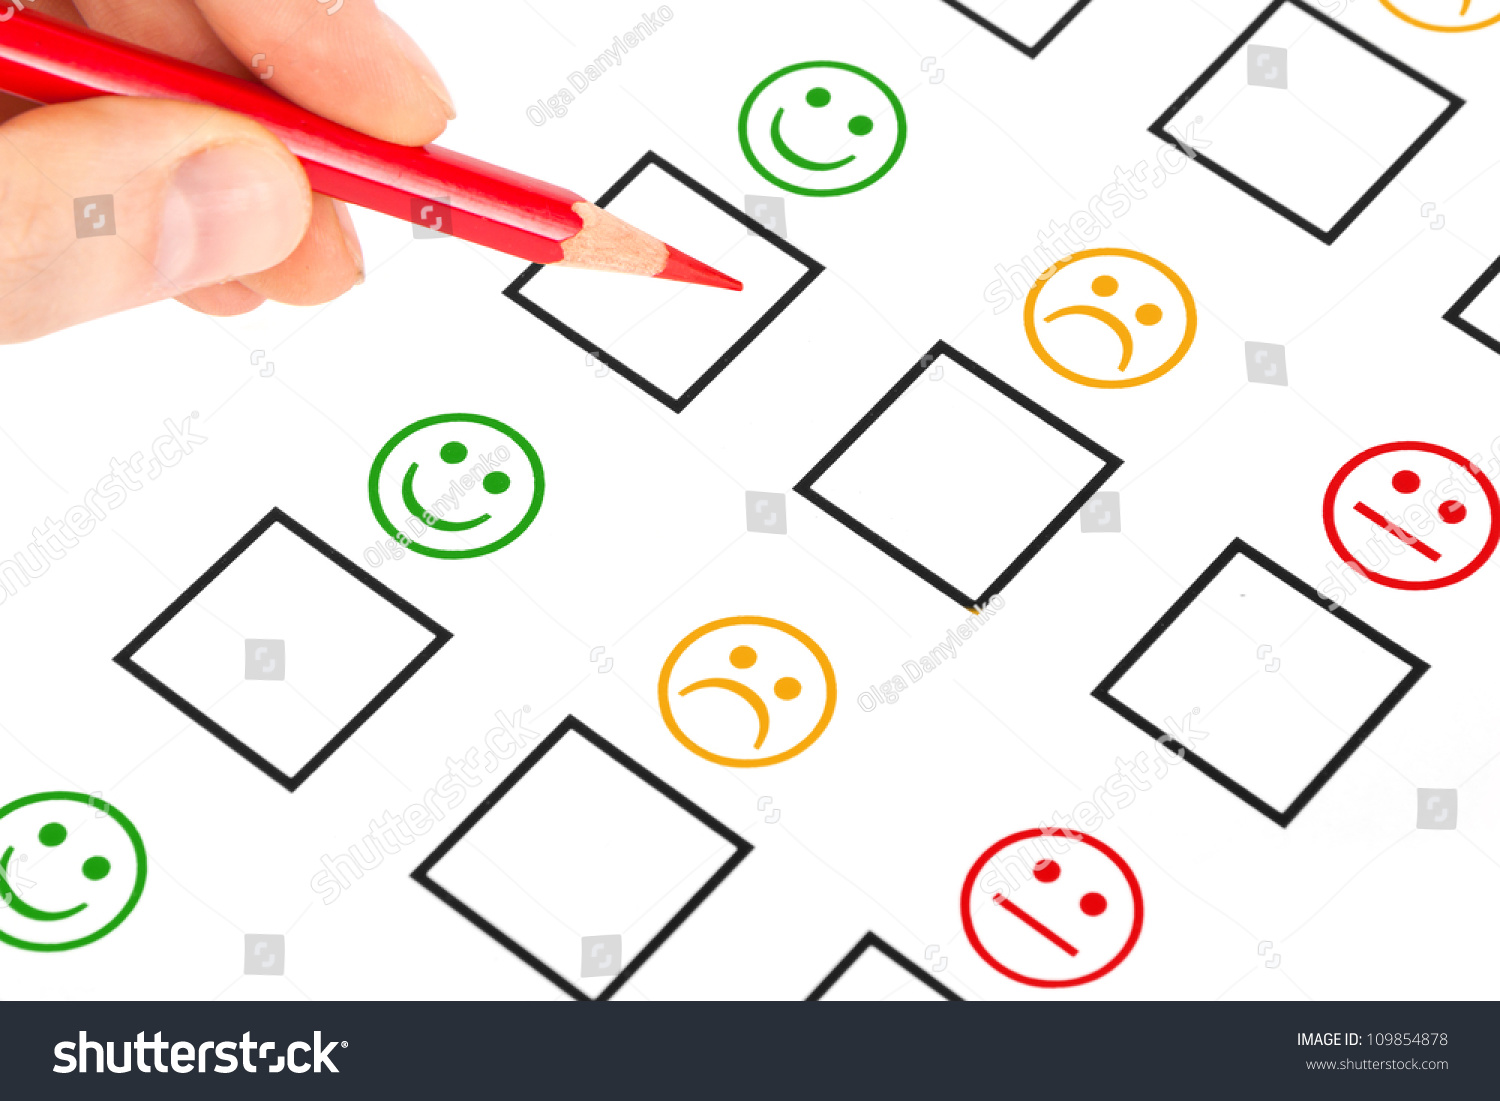 Customer Satisfaction Questionnaire Showing Marketing Business Stock Photo Customer Satisfaction Questionnaire Showing Marketing Or Business Concept  Stock Photo Customer Satisfaction Questionnaire Showing Marketing Or Business Concept